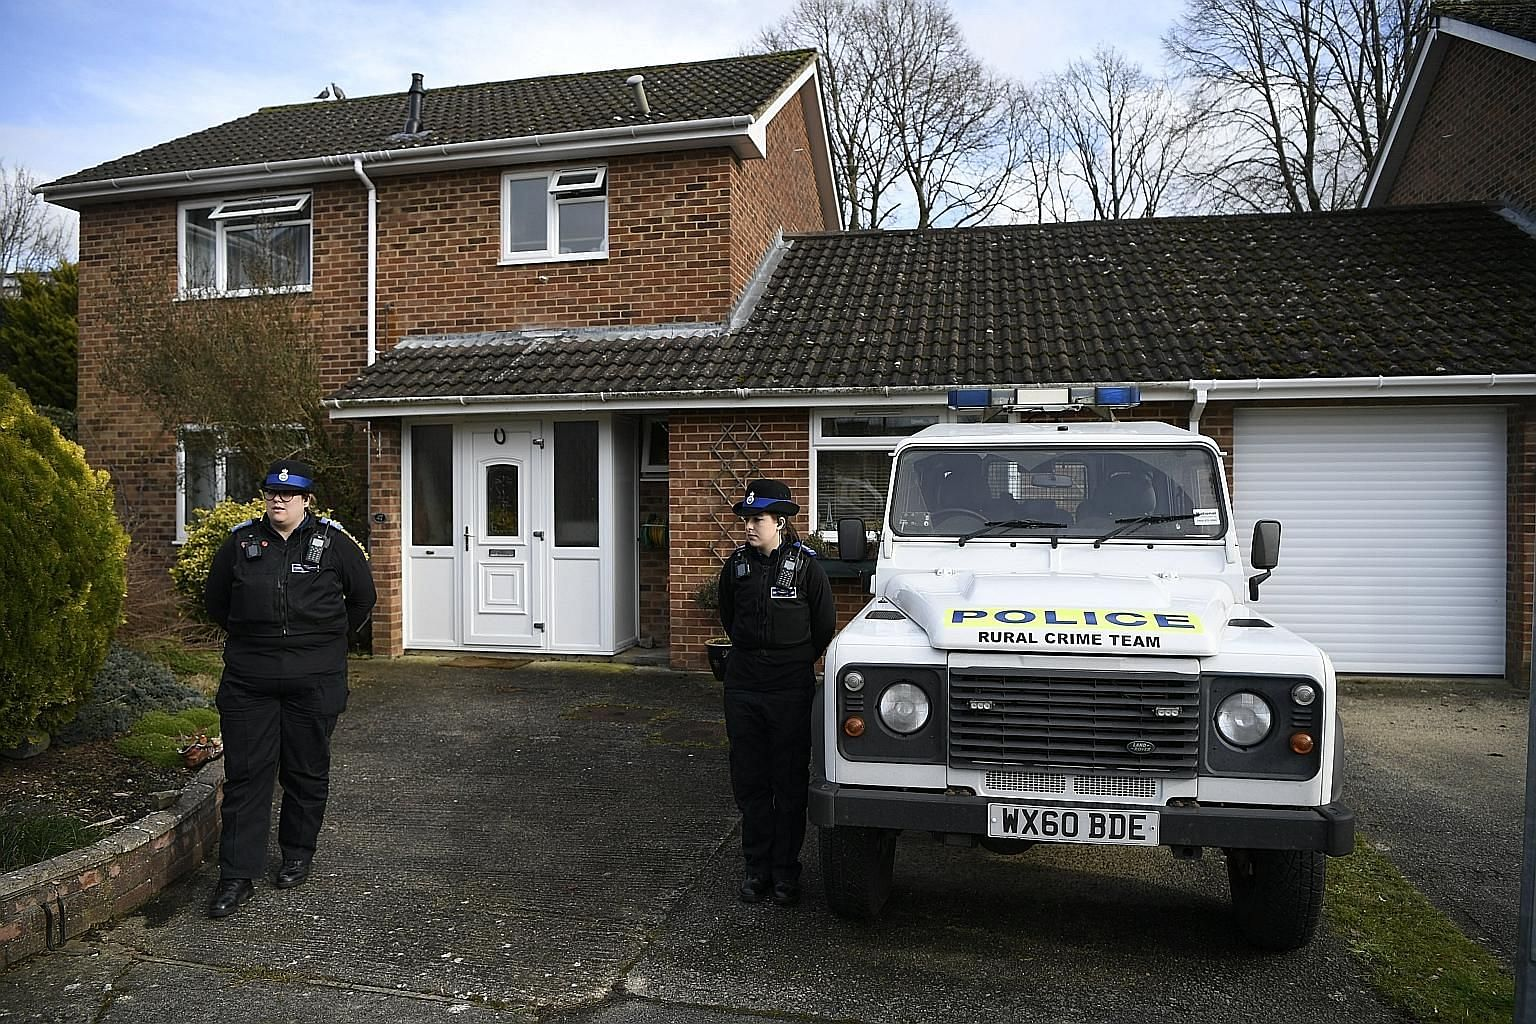 Police standing guard outside what is believed to be the home of former Russian spy Sergei Skripal (above) in Salisbury, Britain, on Tuesday.